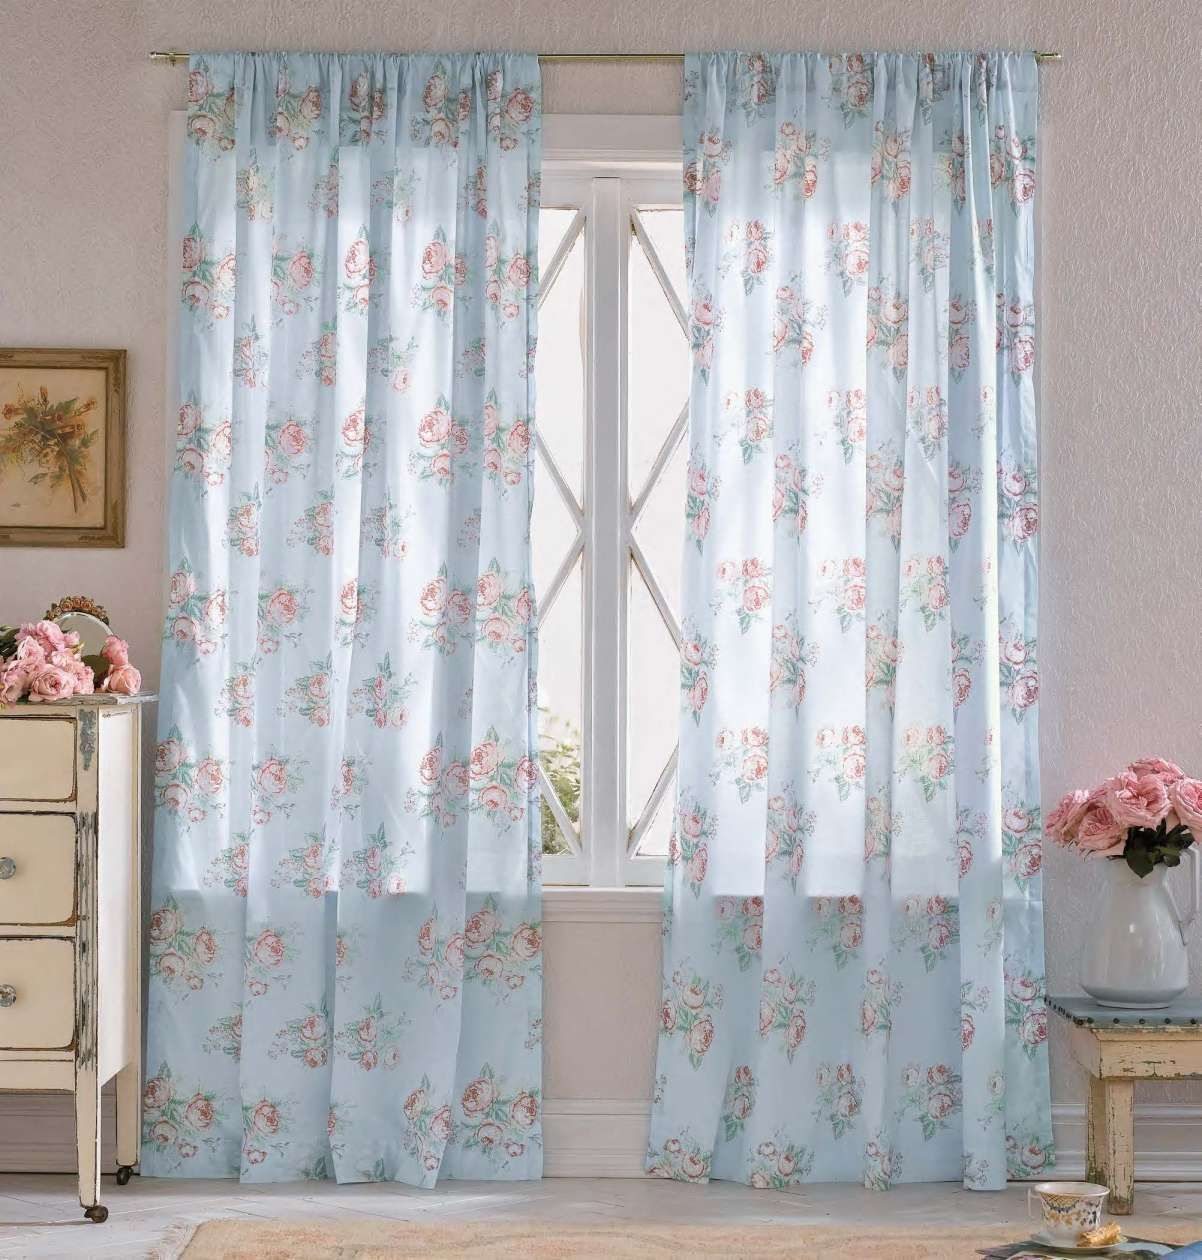 17 Excellent Shabby Chic Curtains At Target Photos Shabby Chic